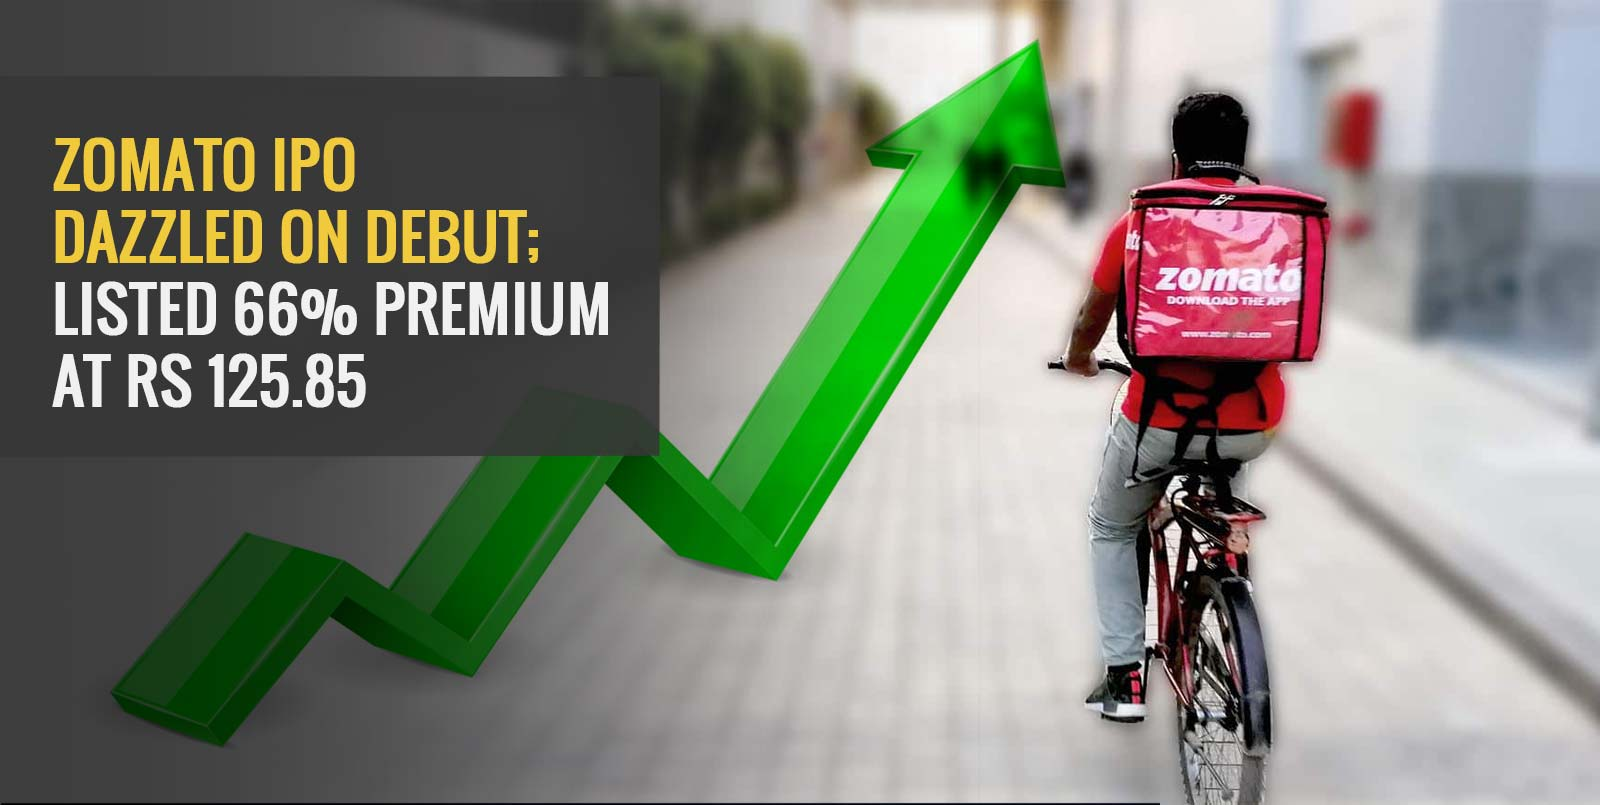 Zomato IPO Dazzled On Debut; Listed 66% Premium At Rs 125.85